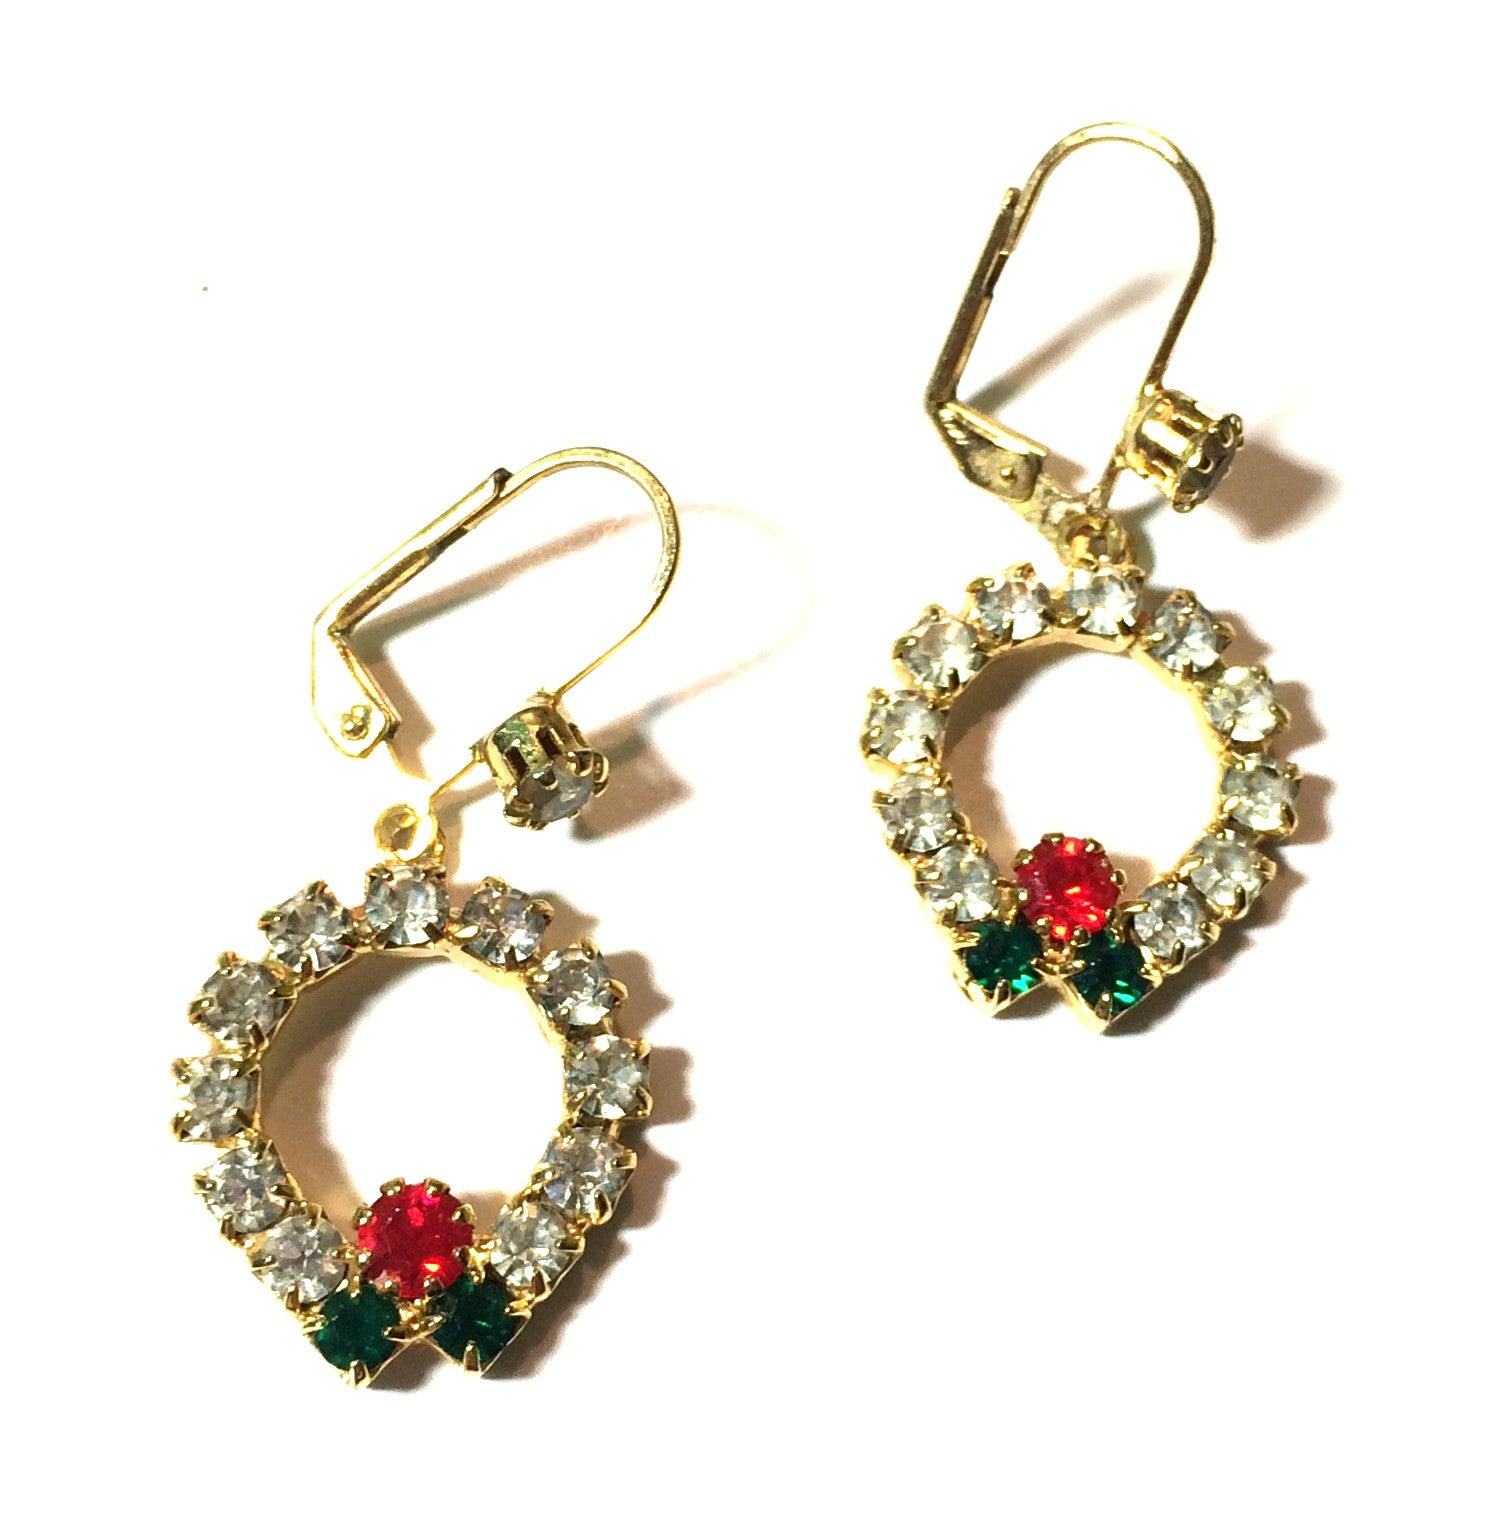 Dangling Green and Red Rhinestone Wreath Earrings circa 1970s